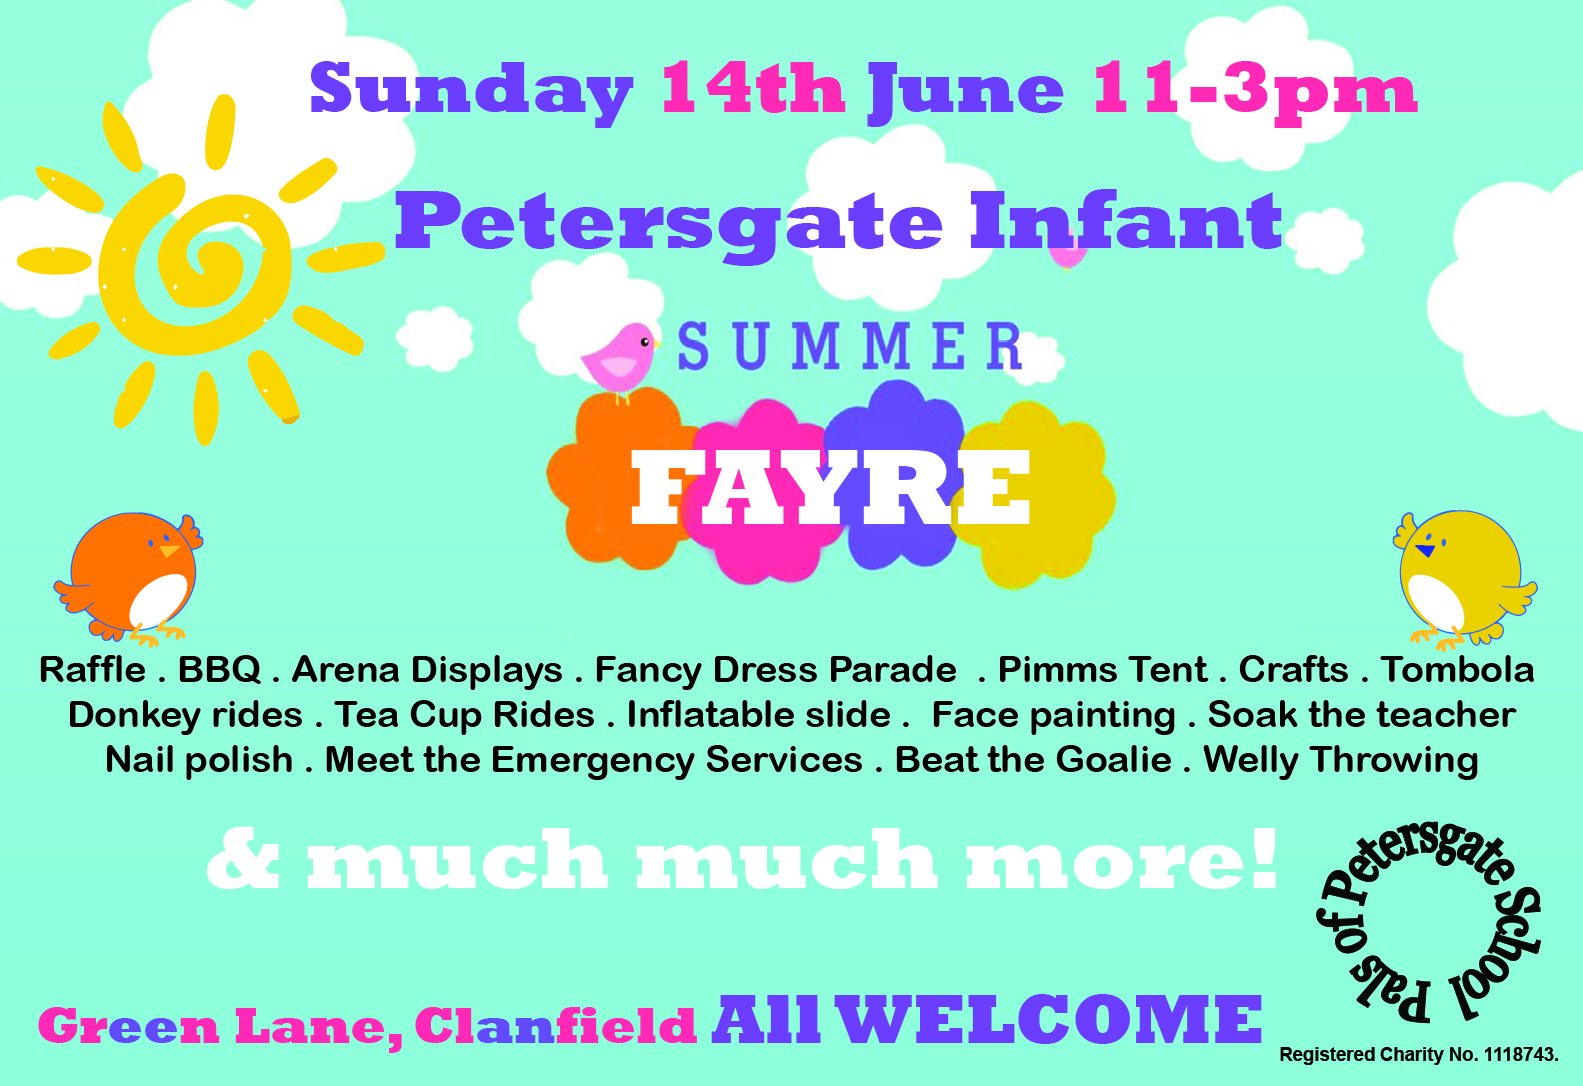 Summer Fayre at Petersgate Infant School